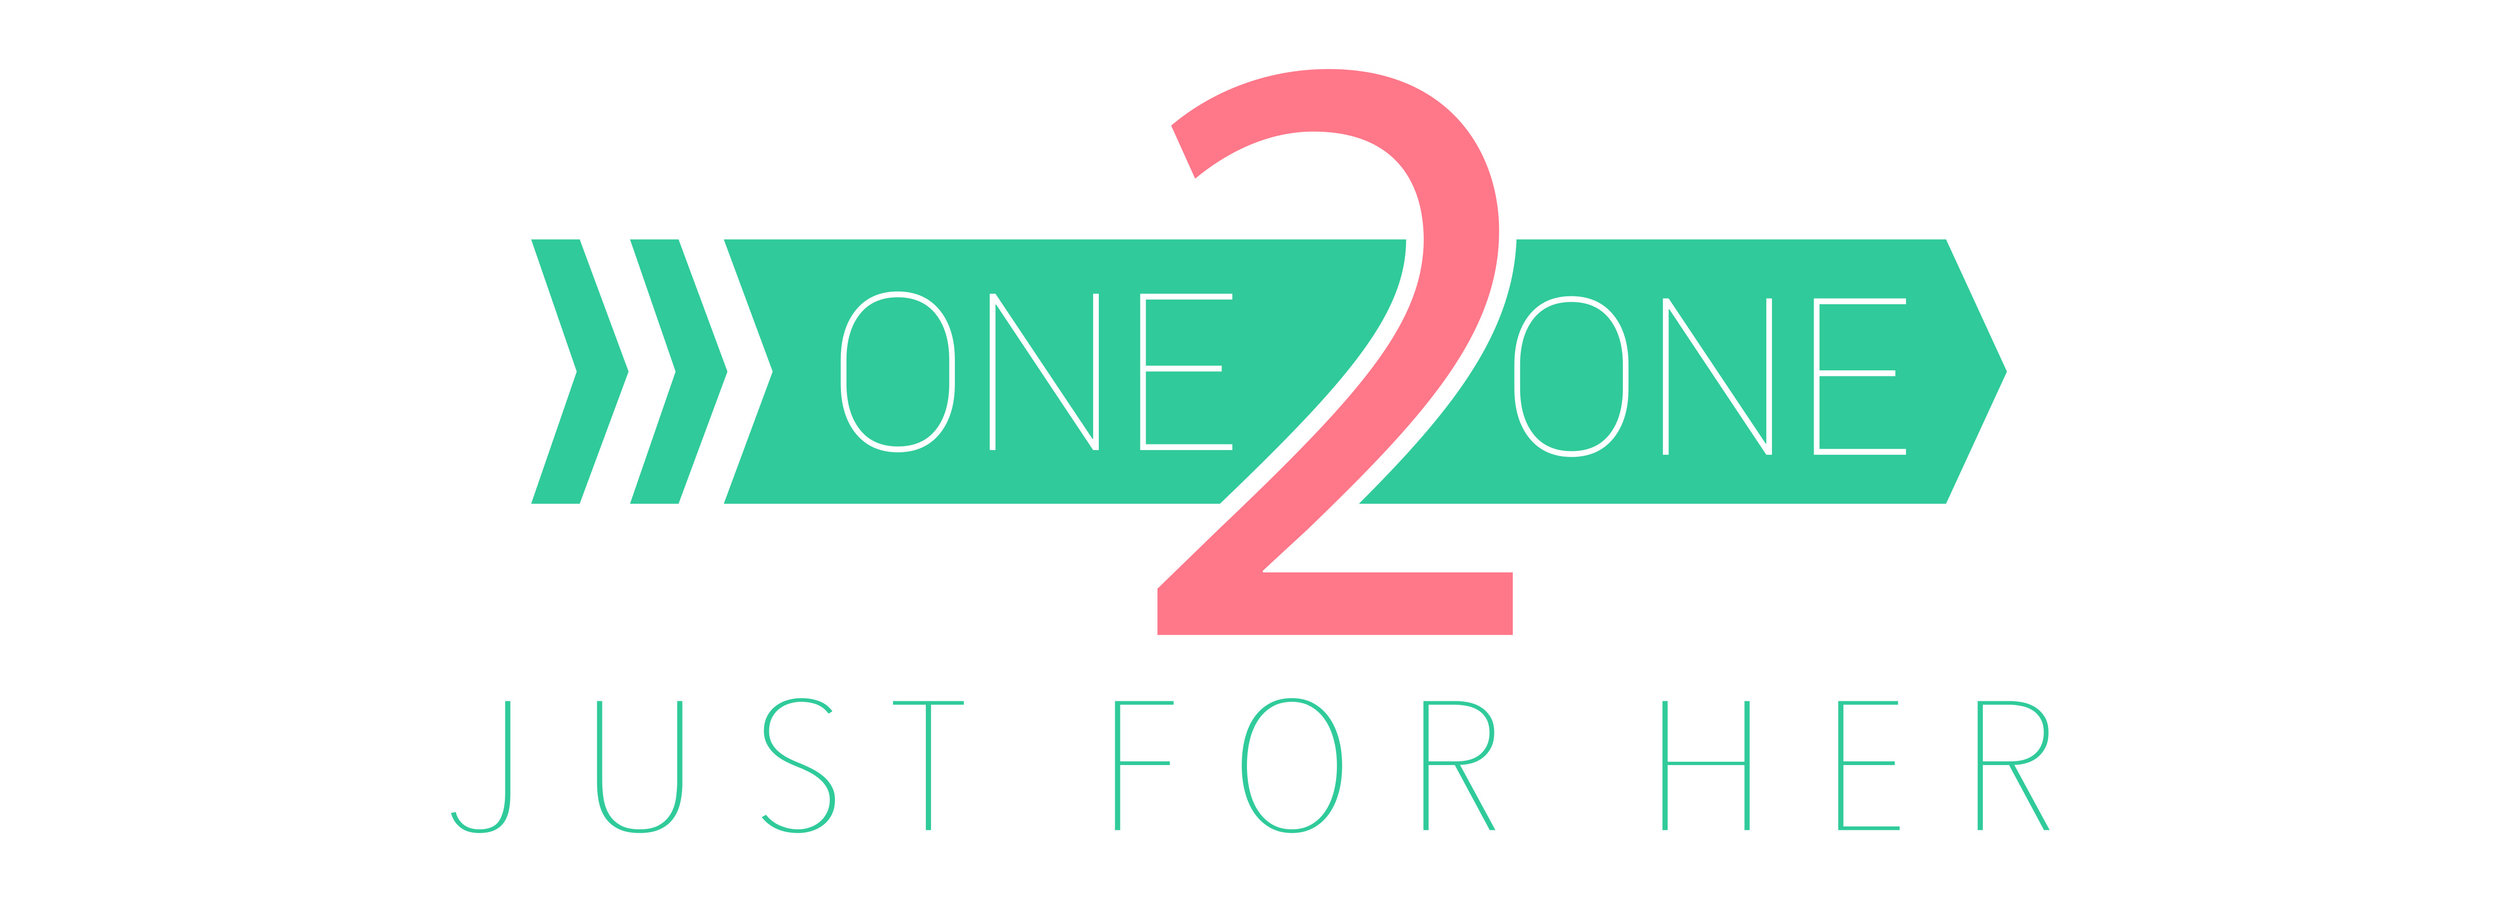 One2One_Color_Banner.jpg